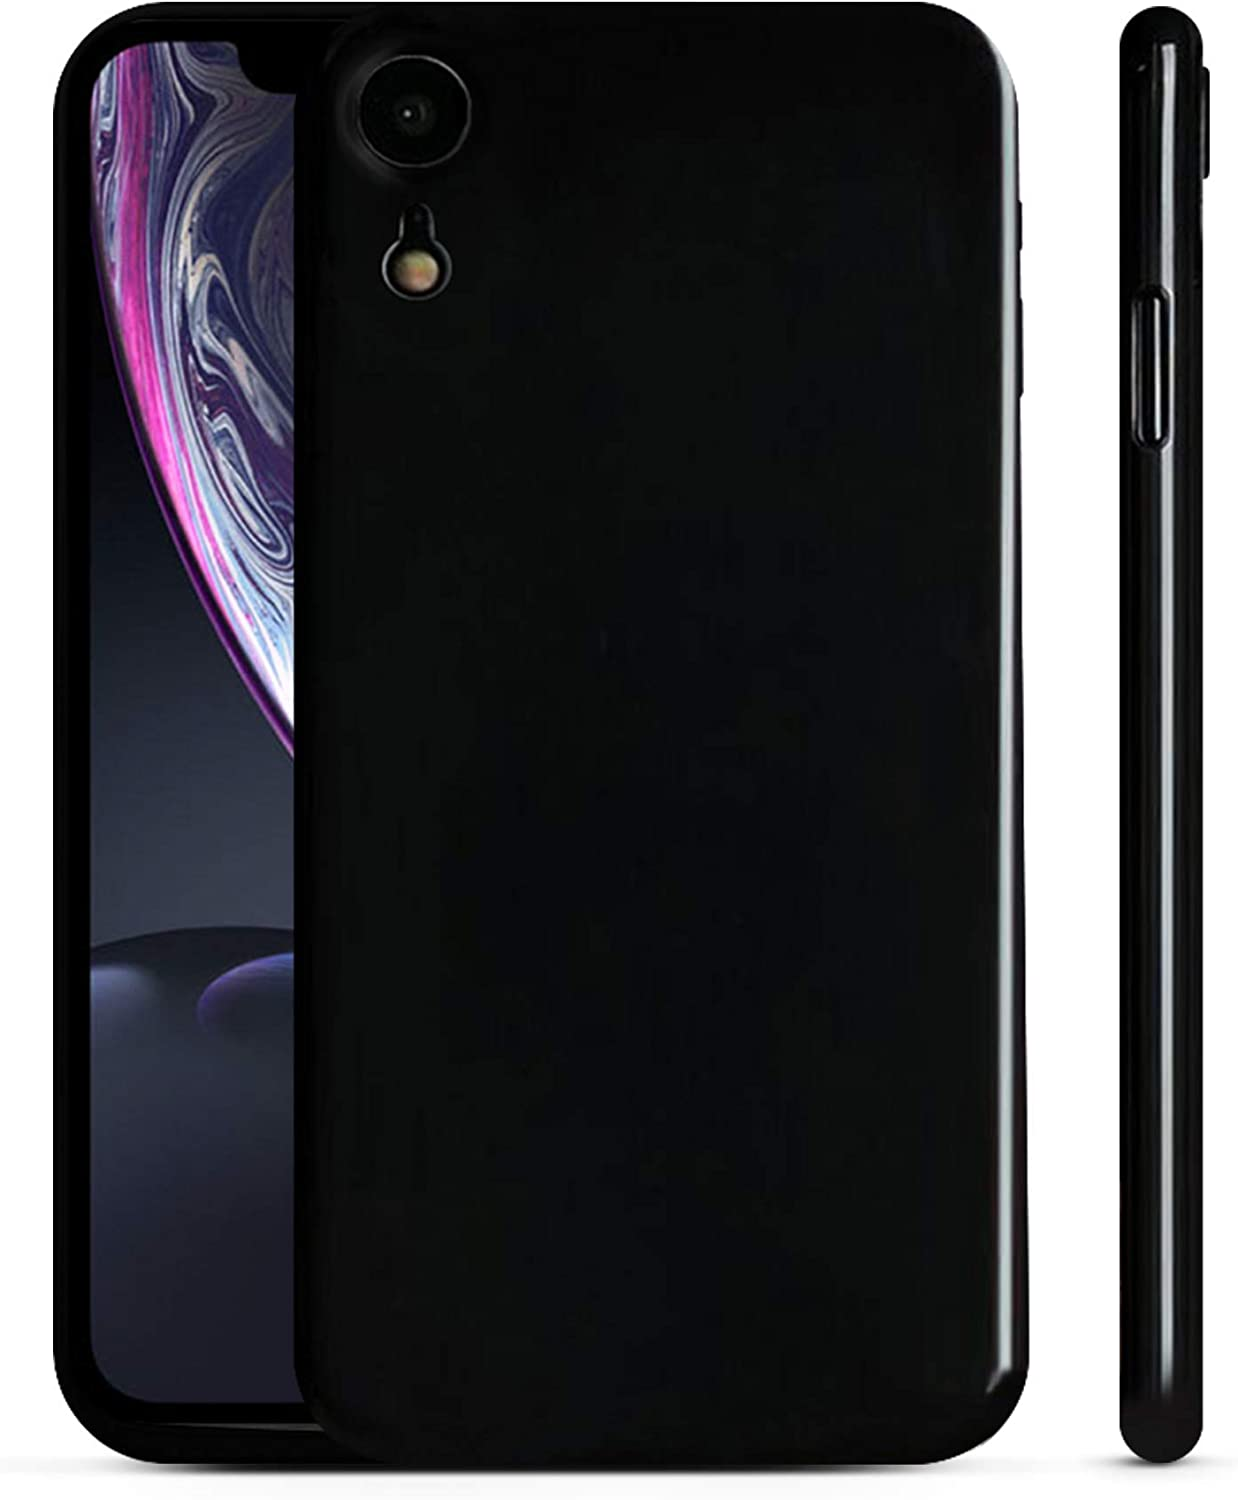 PEEL Ultra Thin iPhone XR Case, Jet Black - Minimalist Design | Branding Free | Protects and Showcases Your Apple iPhone XR